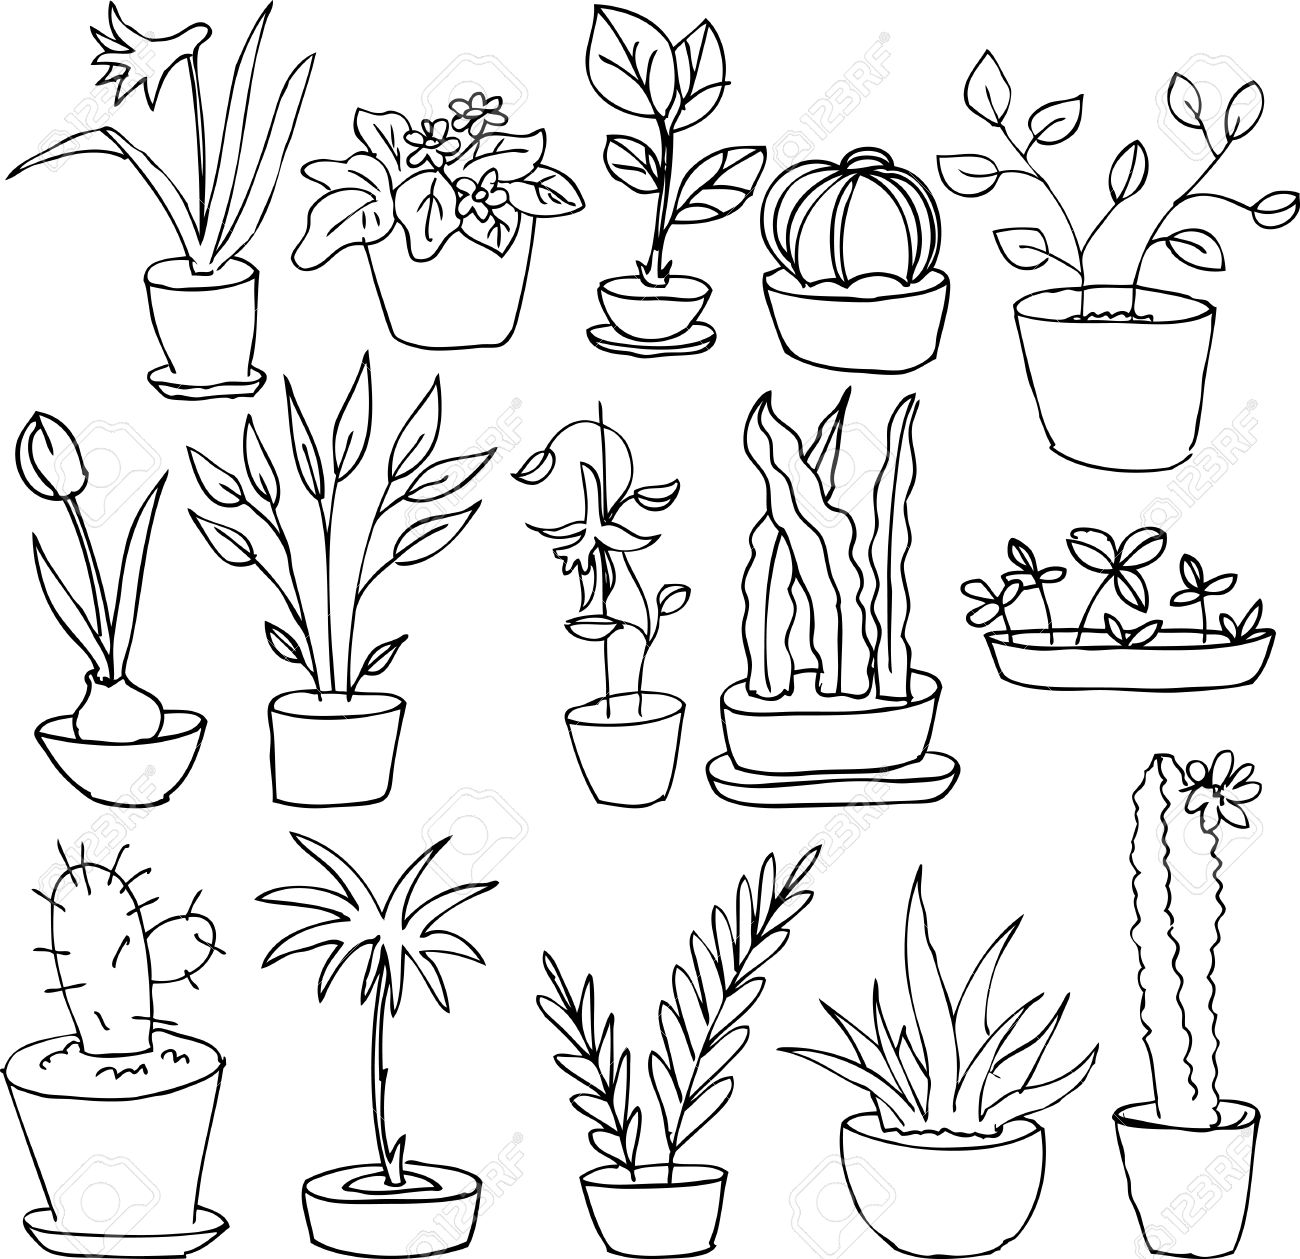 1300x1259 Line Drawing Home Plants, Hand Drawn Vector Illustration Royalty